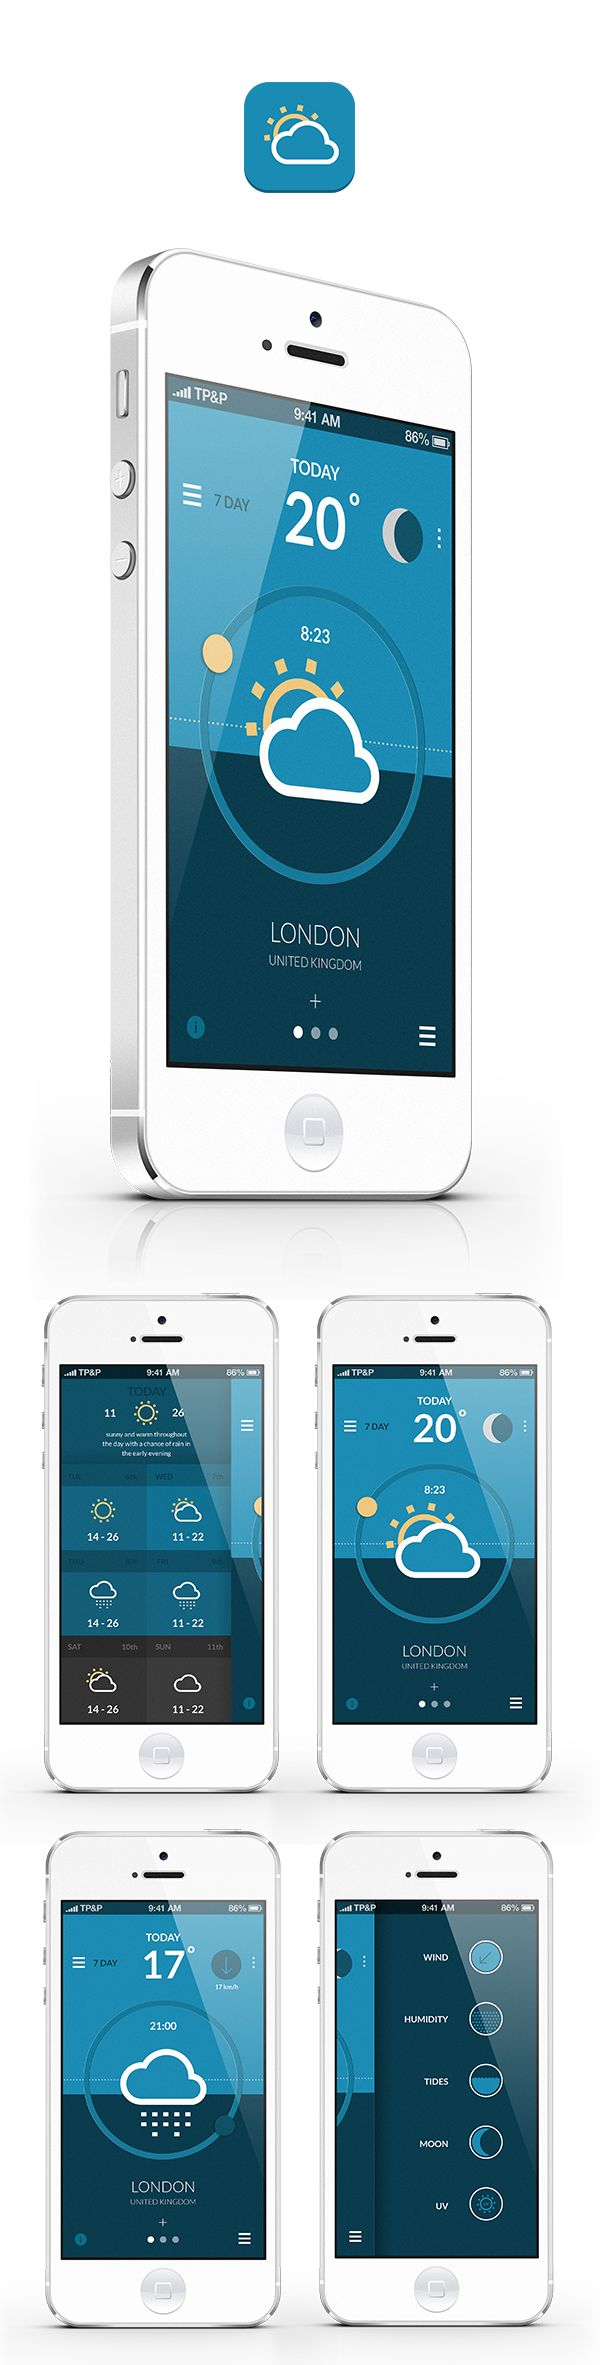 Weather App by Gordon Latimer, via Behance